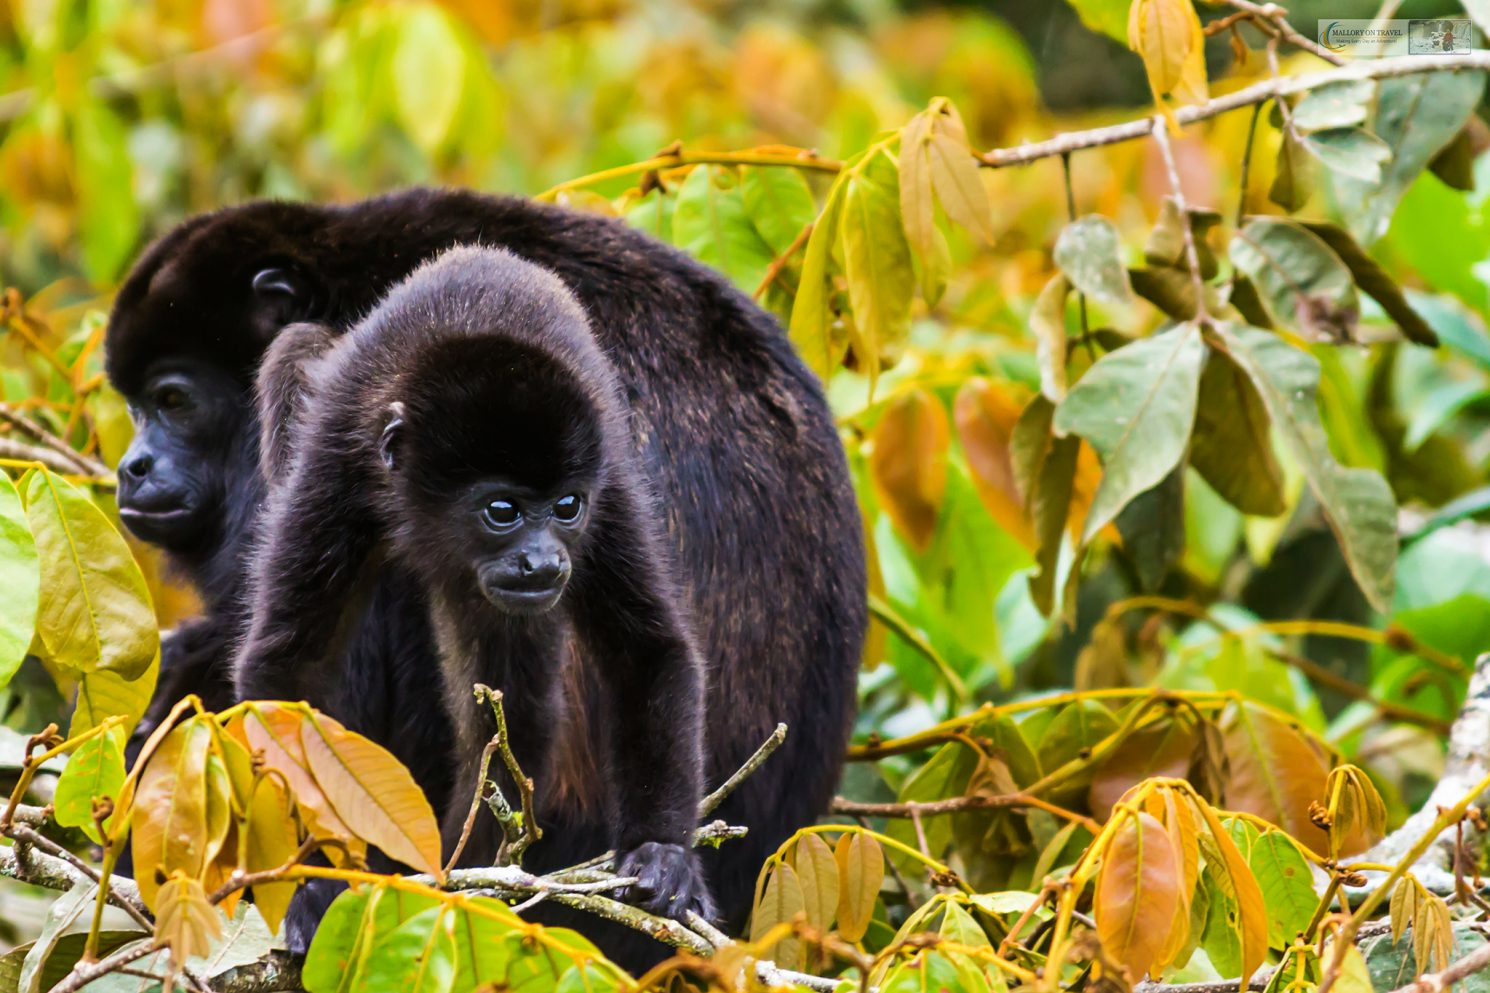 A howler monkey in the cloud forests of Costa Rica, Central America on Mallory on Travel adventure travel, photography, travel Iain Mallory_CostaRica 001-62